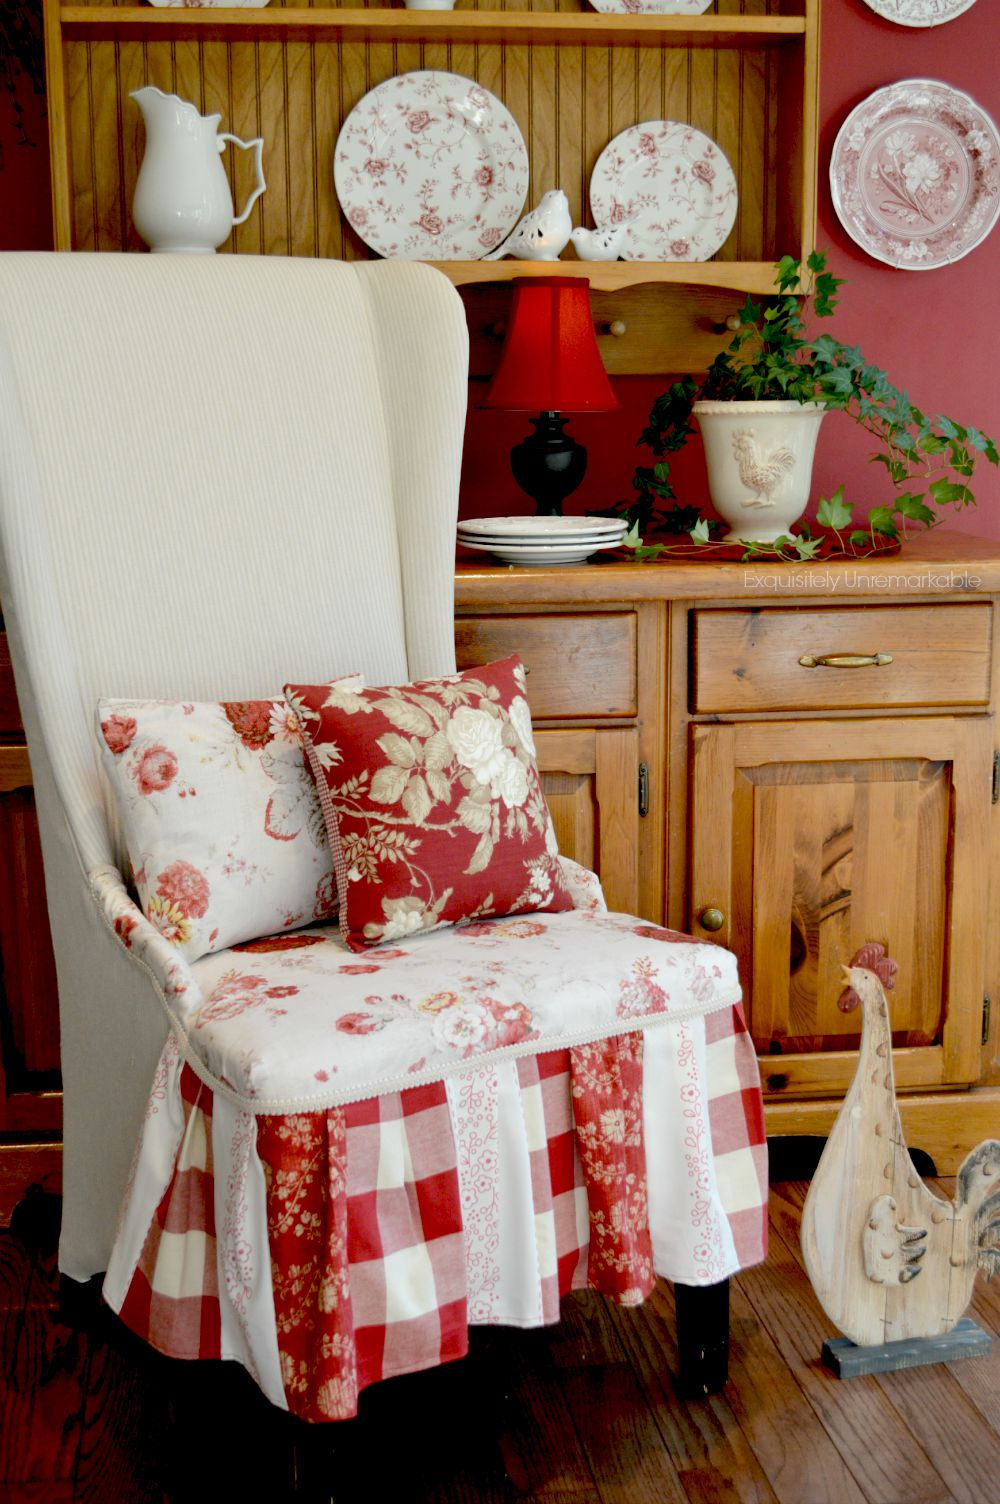 How To Make An Upholstered Chair Skirt